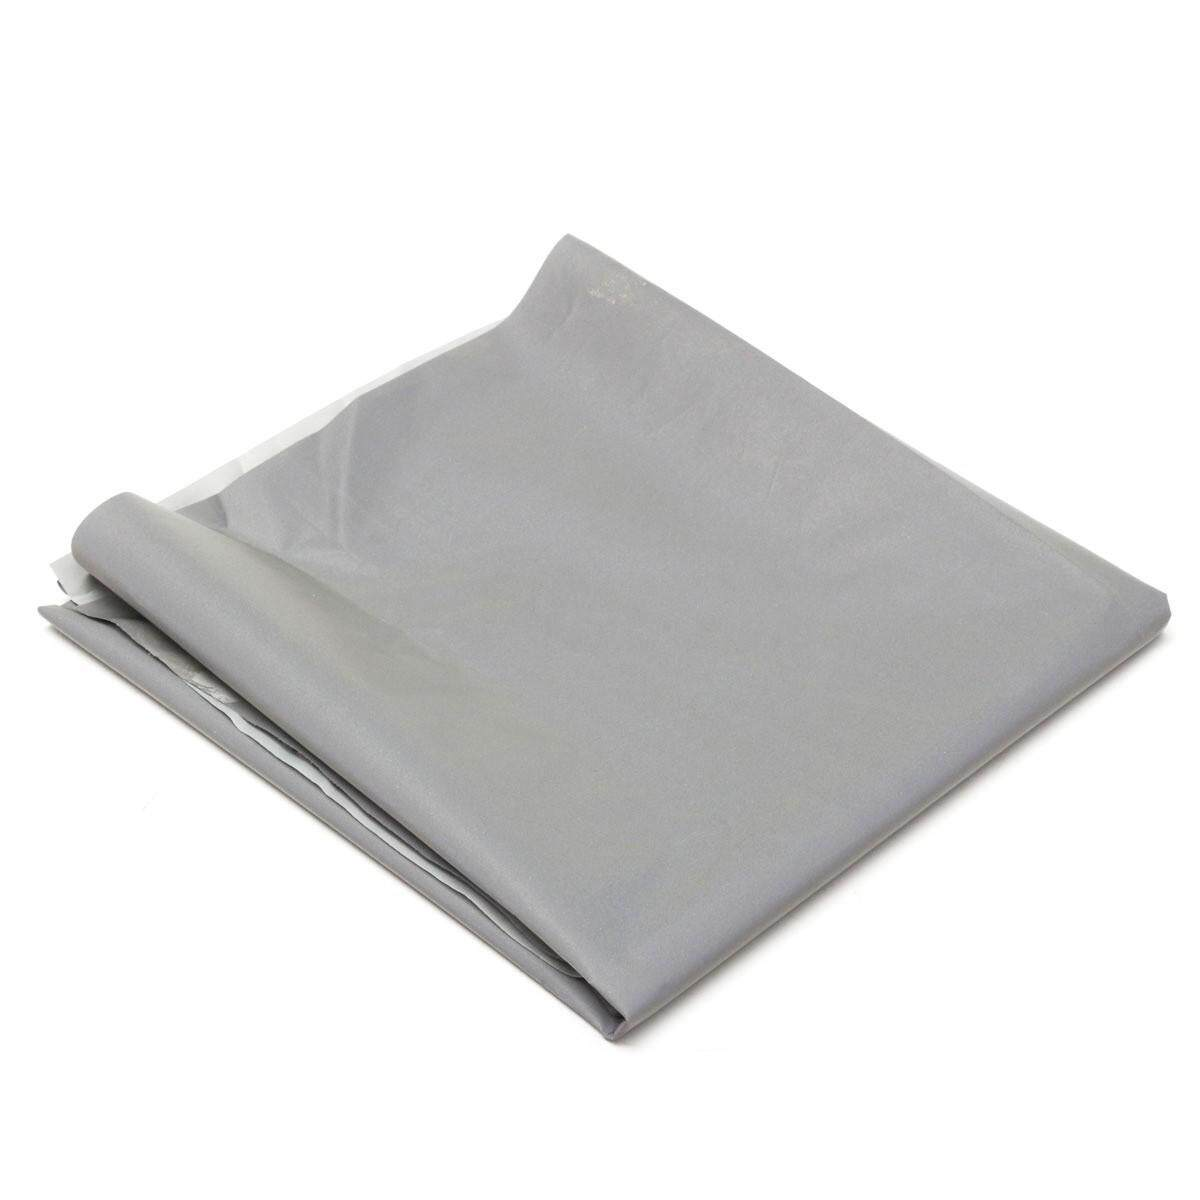 Silver Reflective Fabric Sew On Cloth Material Highlight Chemical Fiber 39.4inch By Sunnny2015.